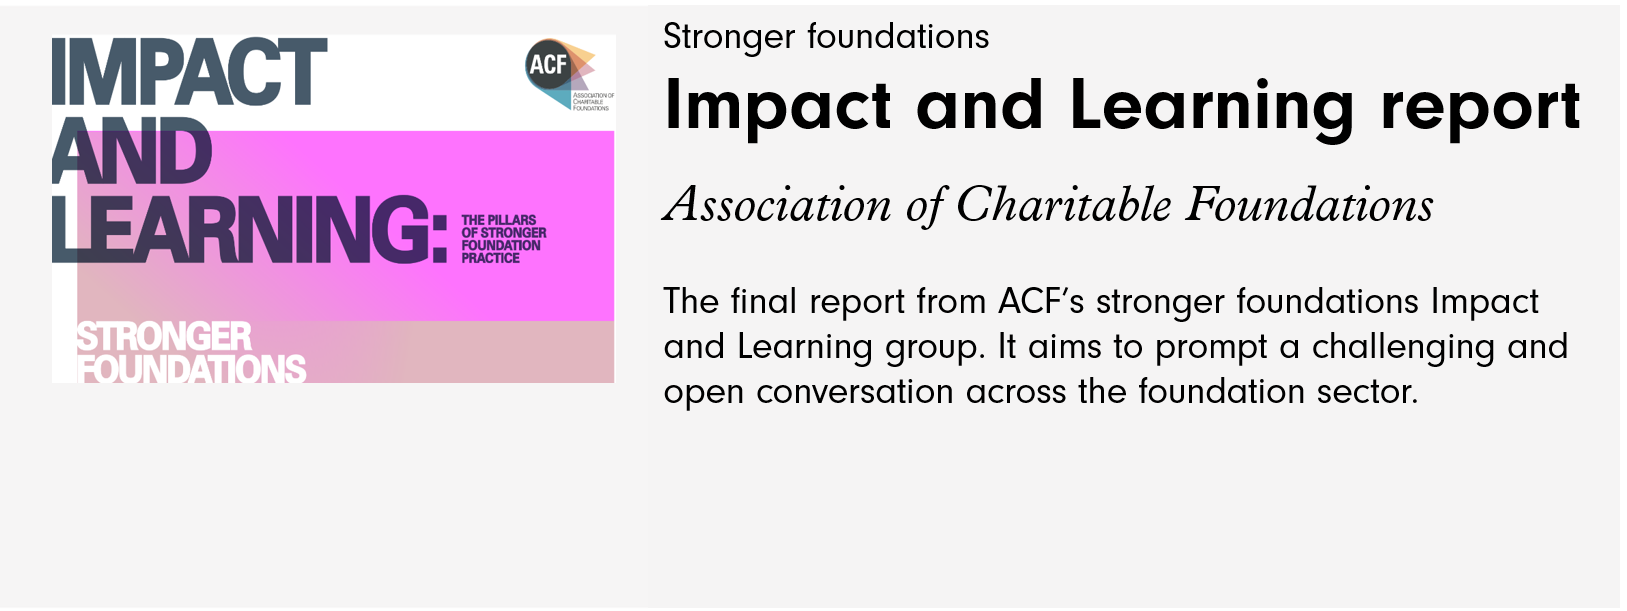 ACF Impact and Learning - image for webpage 2702